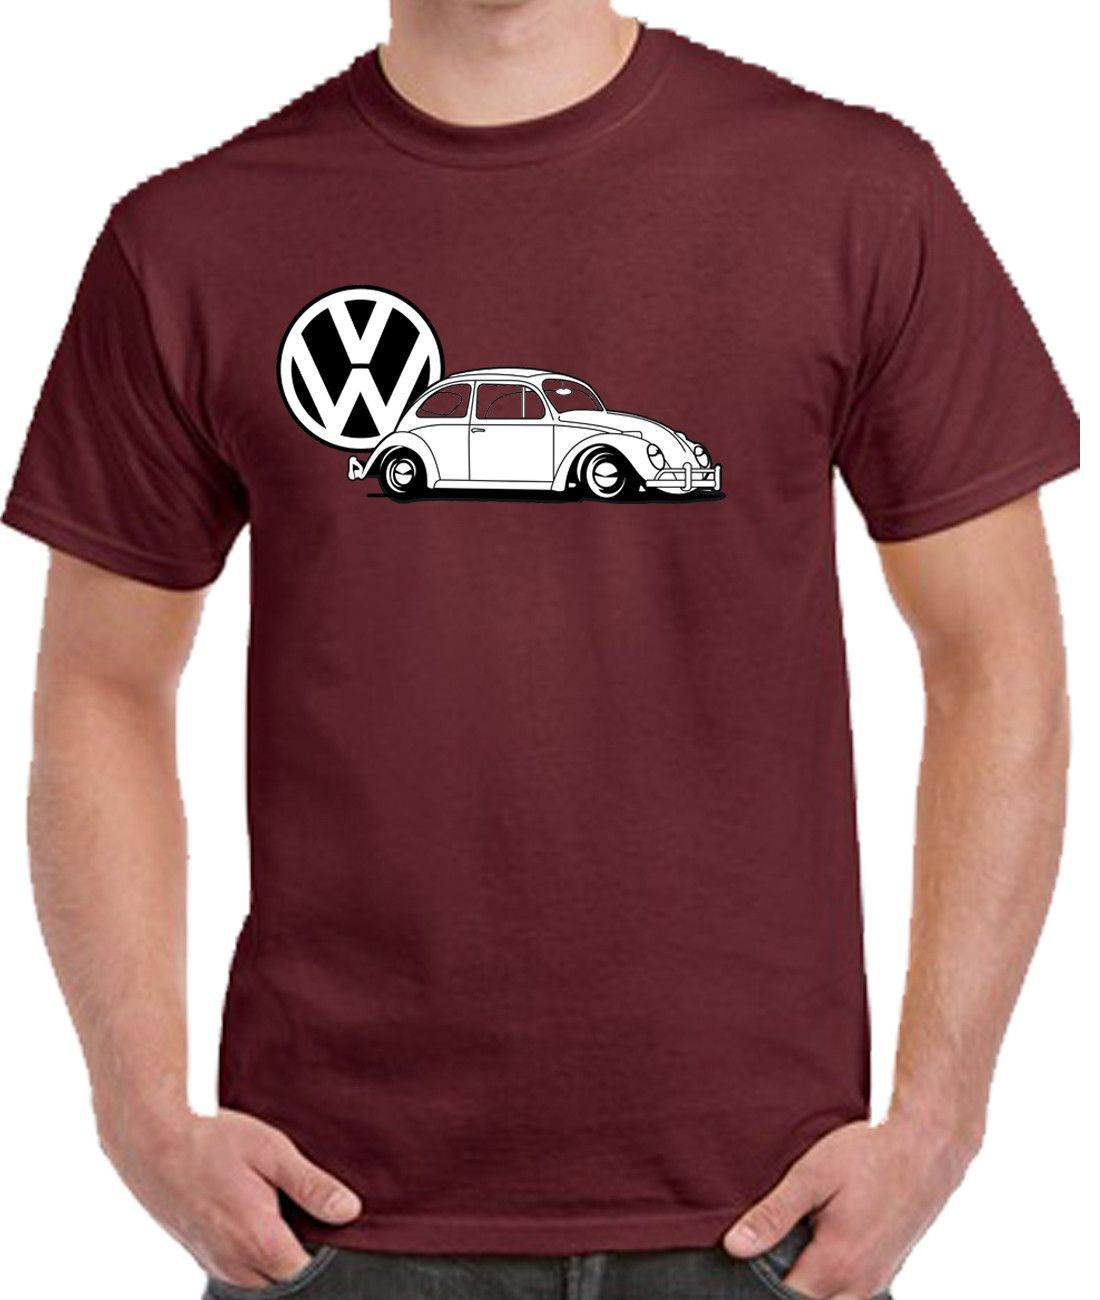 Design your own t shirt christchurch